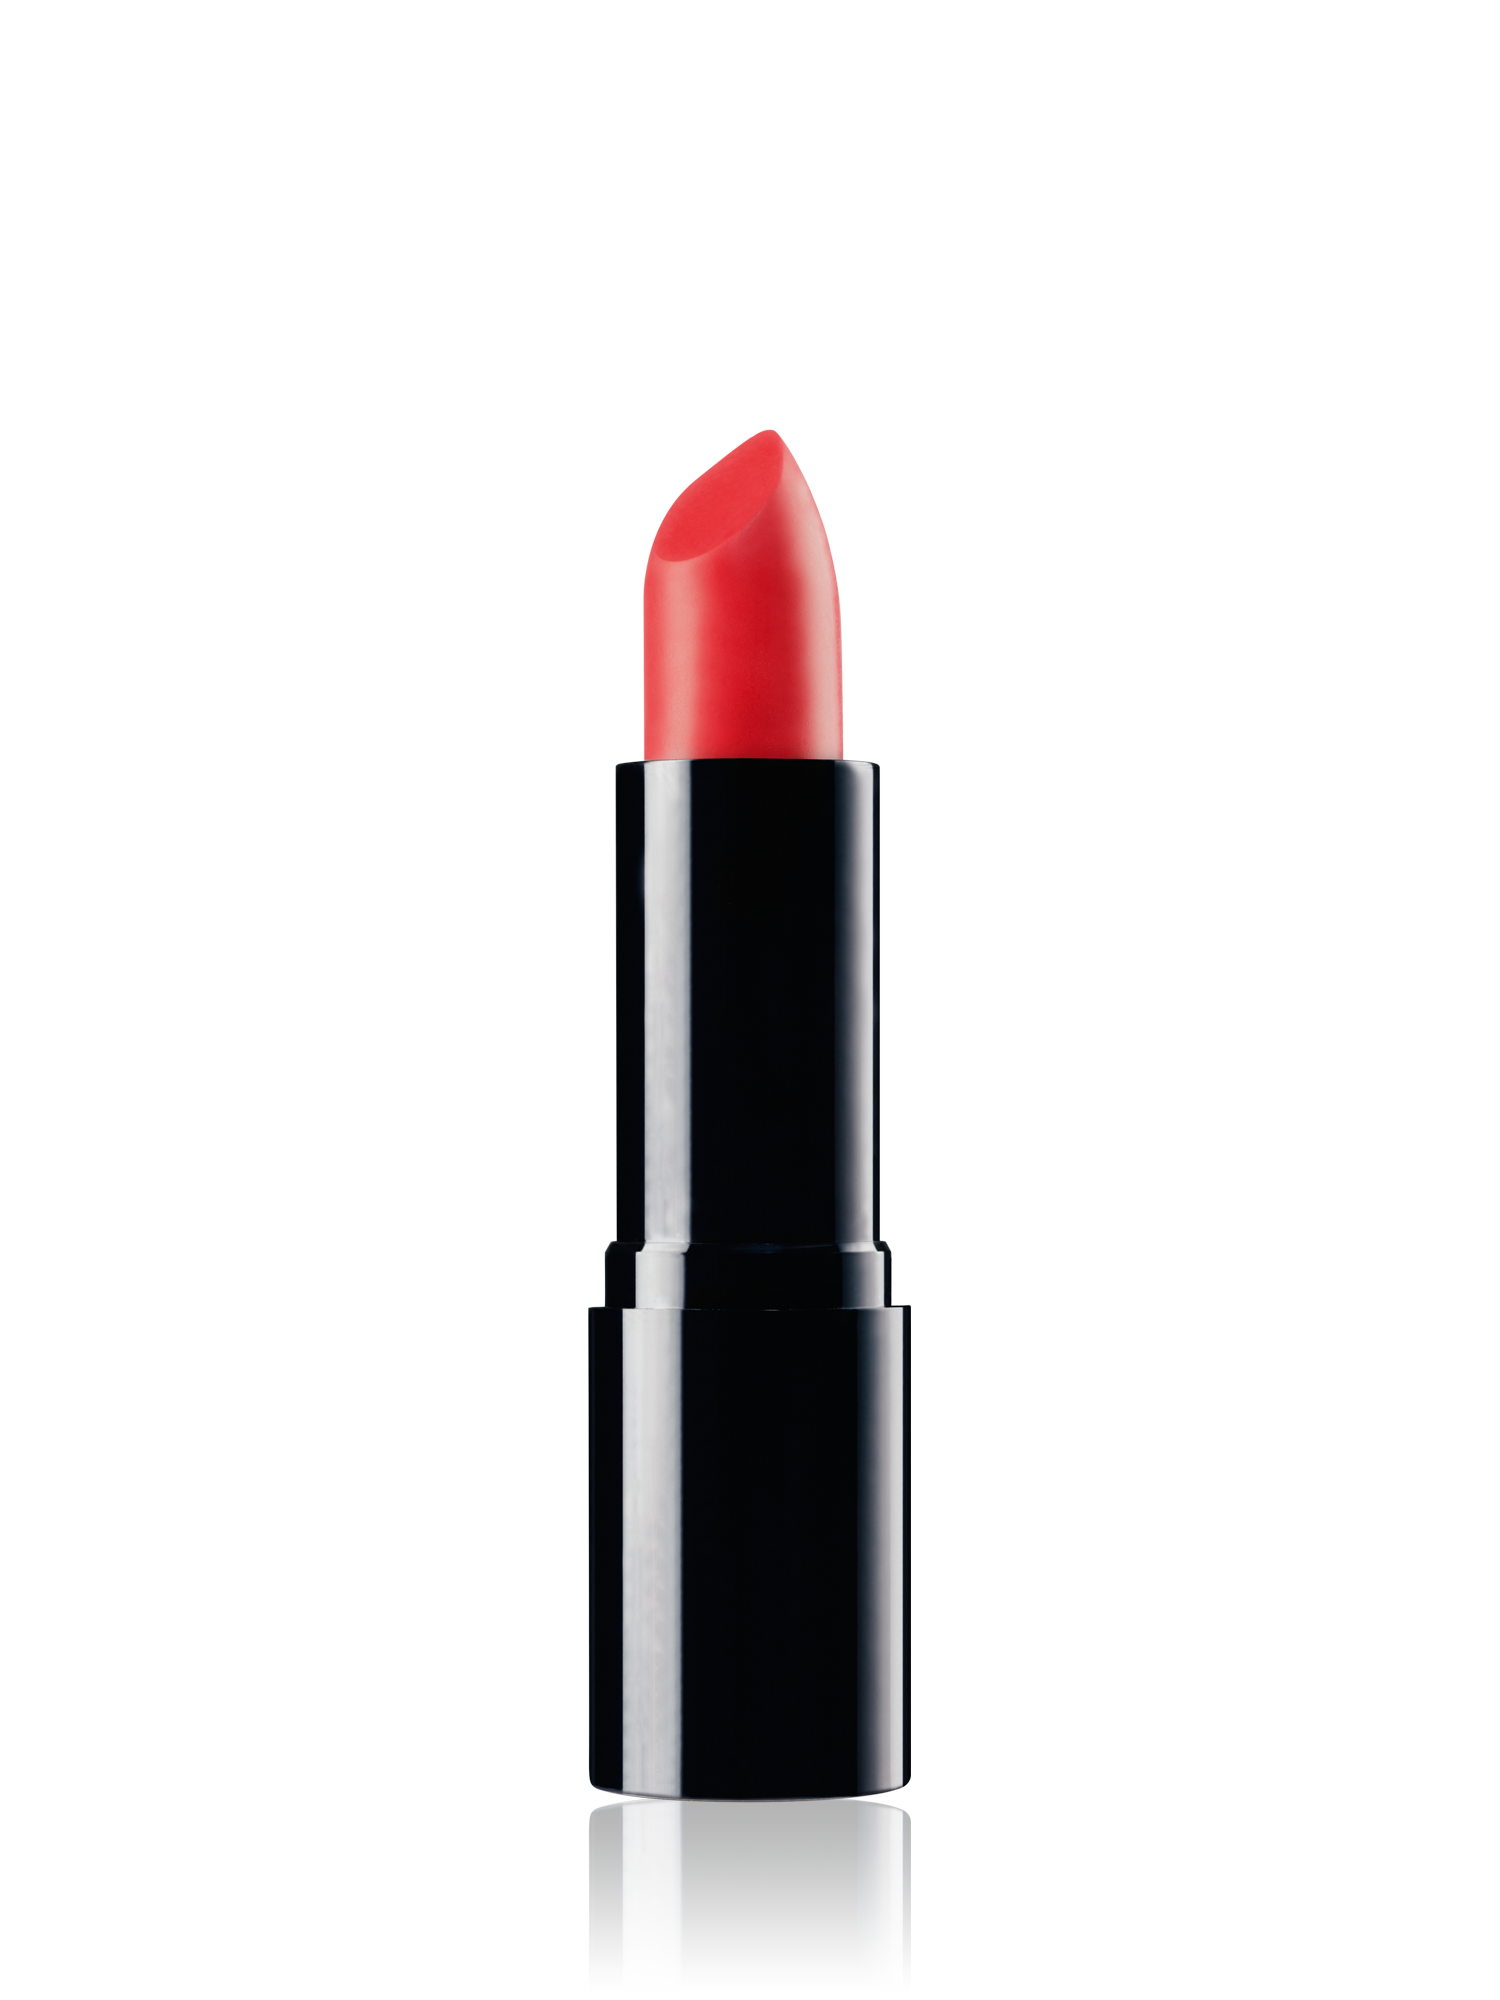 Lipstick clipart clear background.  collection of transparent